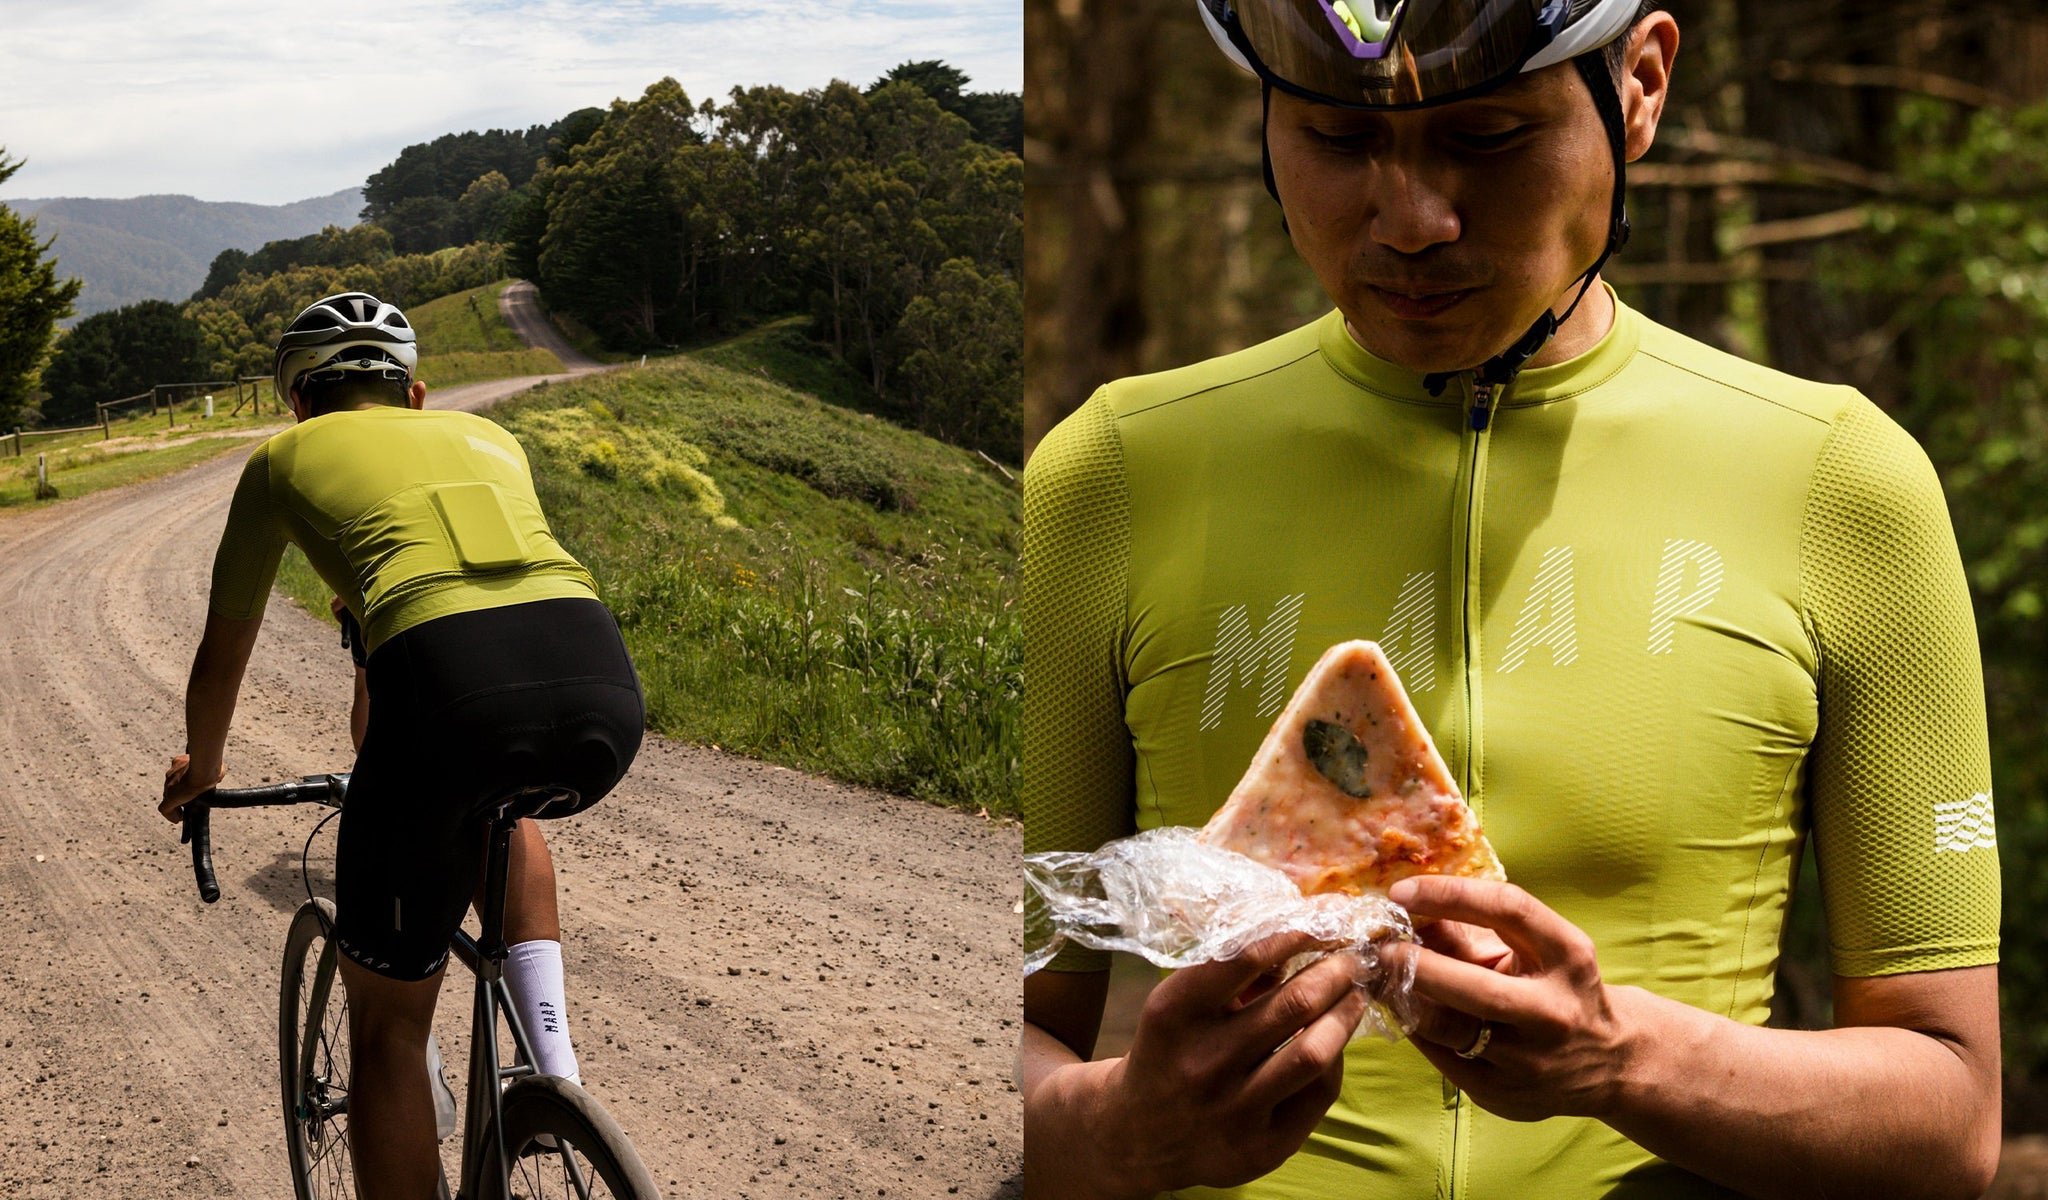 MAAP Echo Pro Base Jersey in Fern Green for cycling in warm weather conditions.